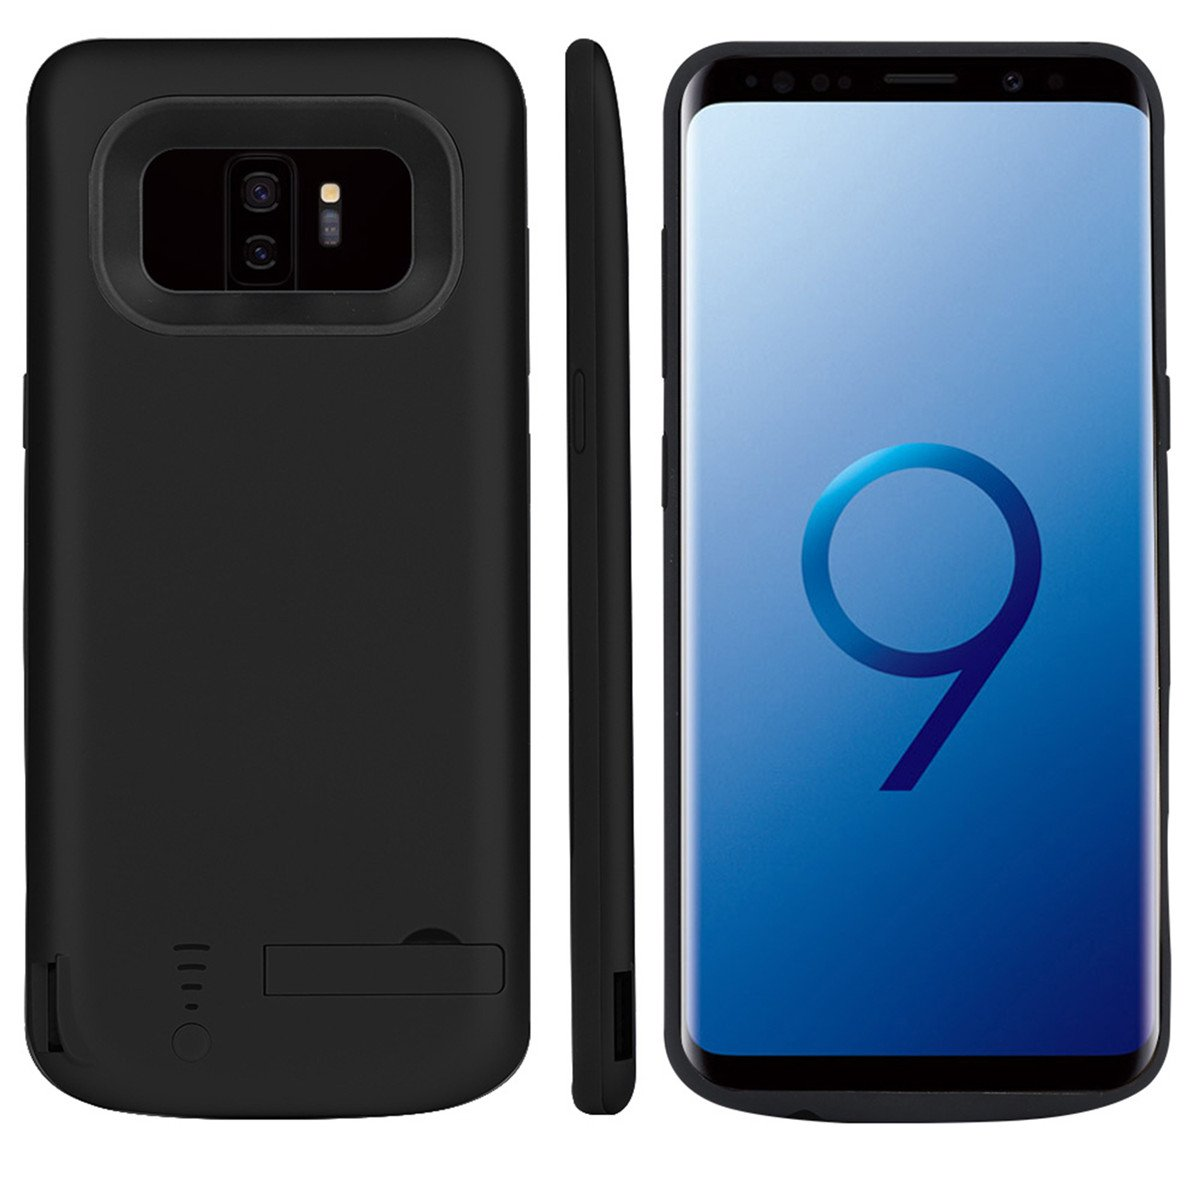 Promama Samsung Galaxy S9 Plus Battery Case, Accessories External Protective Battery ccover Compatible with Samsung Galaxy S9 Plus Juice Case [Accessories ] - Black